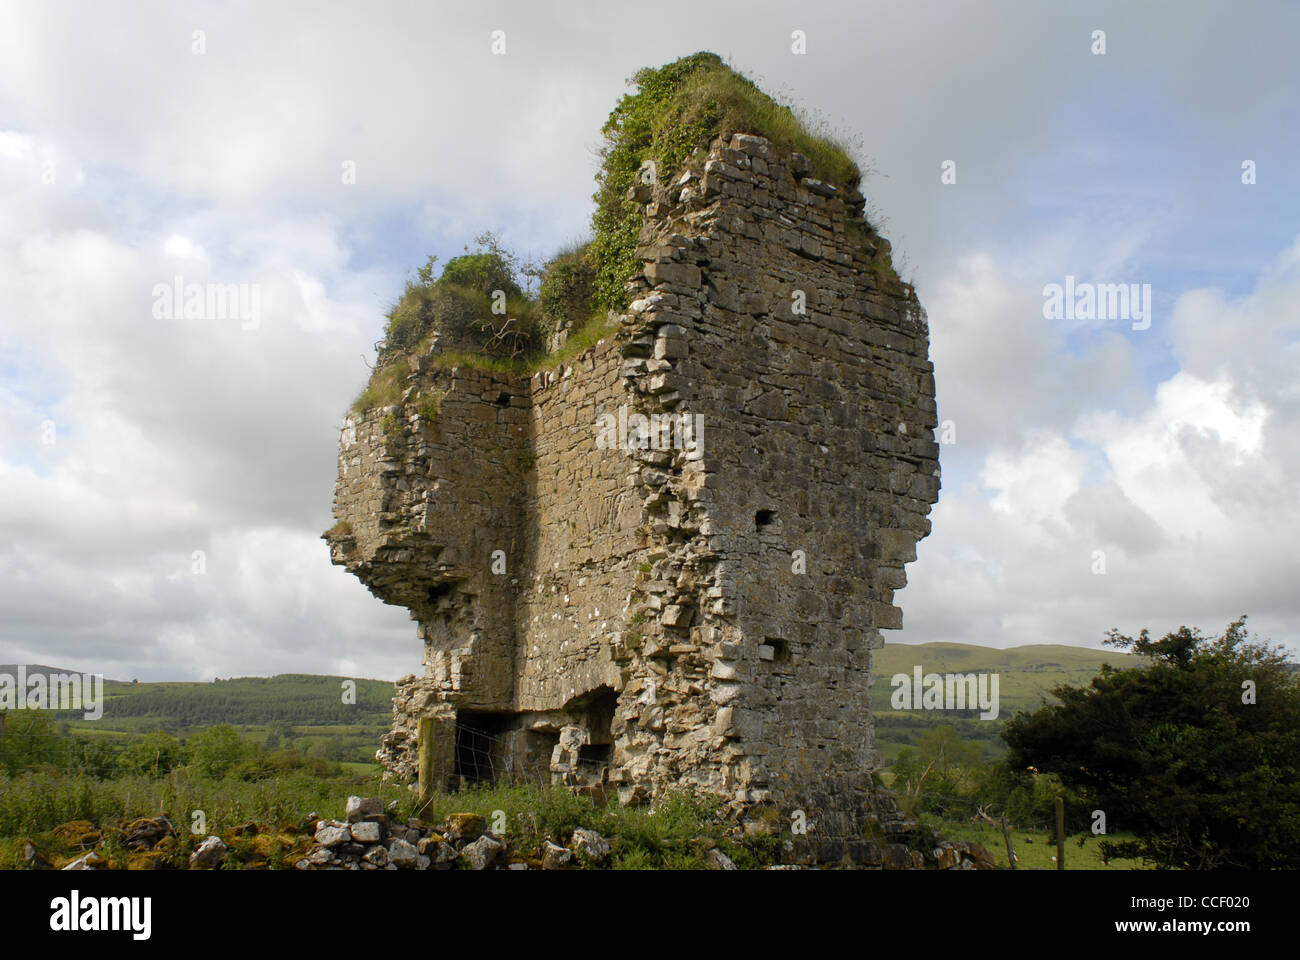 Remains of the O'Rourke Castle, The Cuéllar Trail, Castletown, County Laois, Leinster, Ireland, Europe. - Stock Image